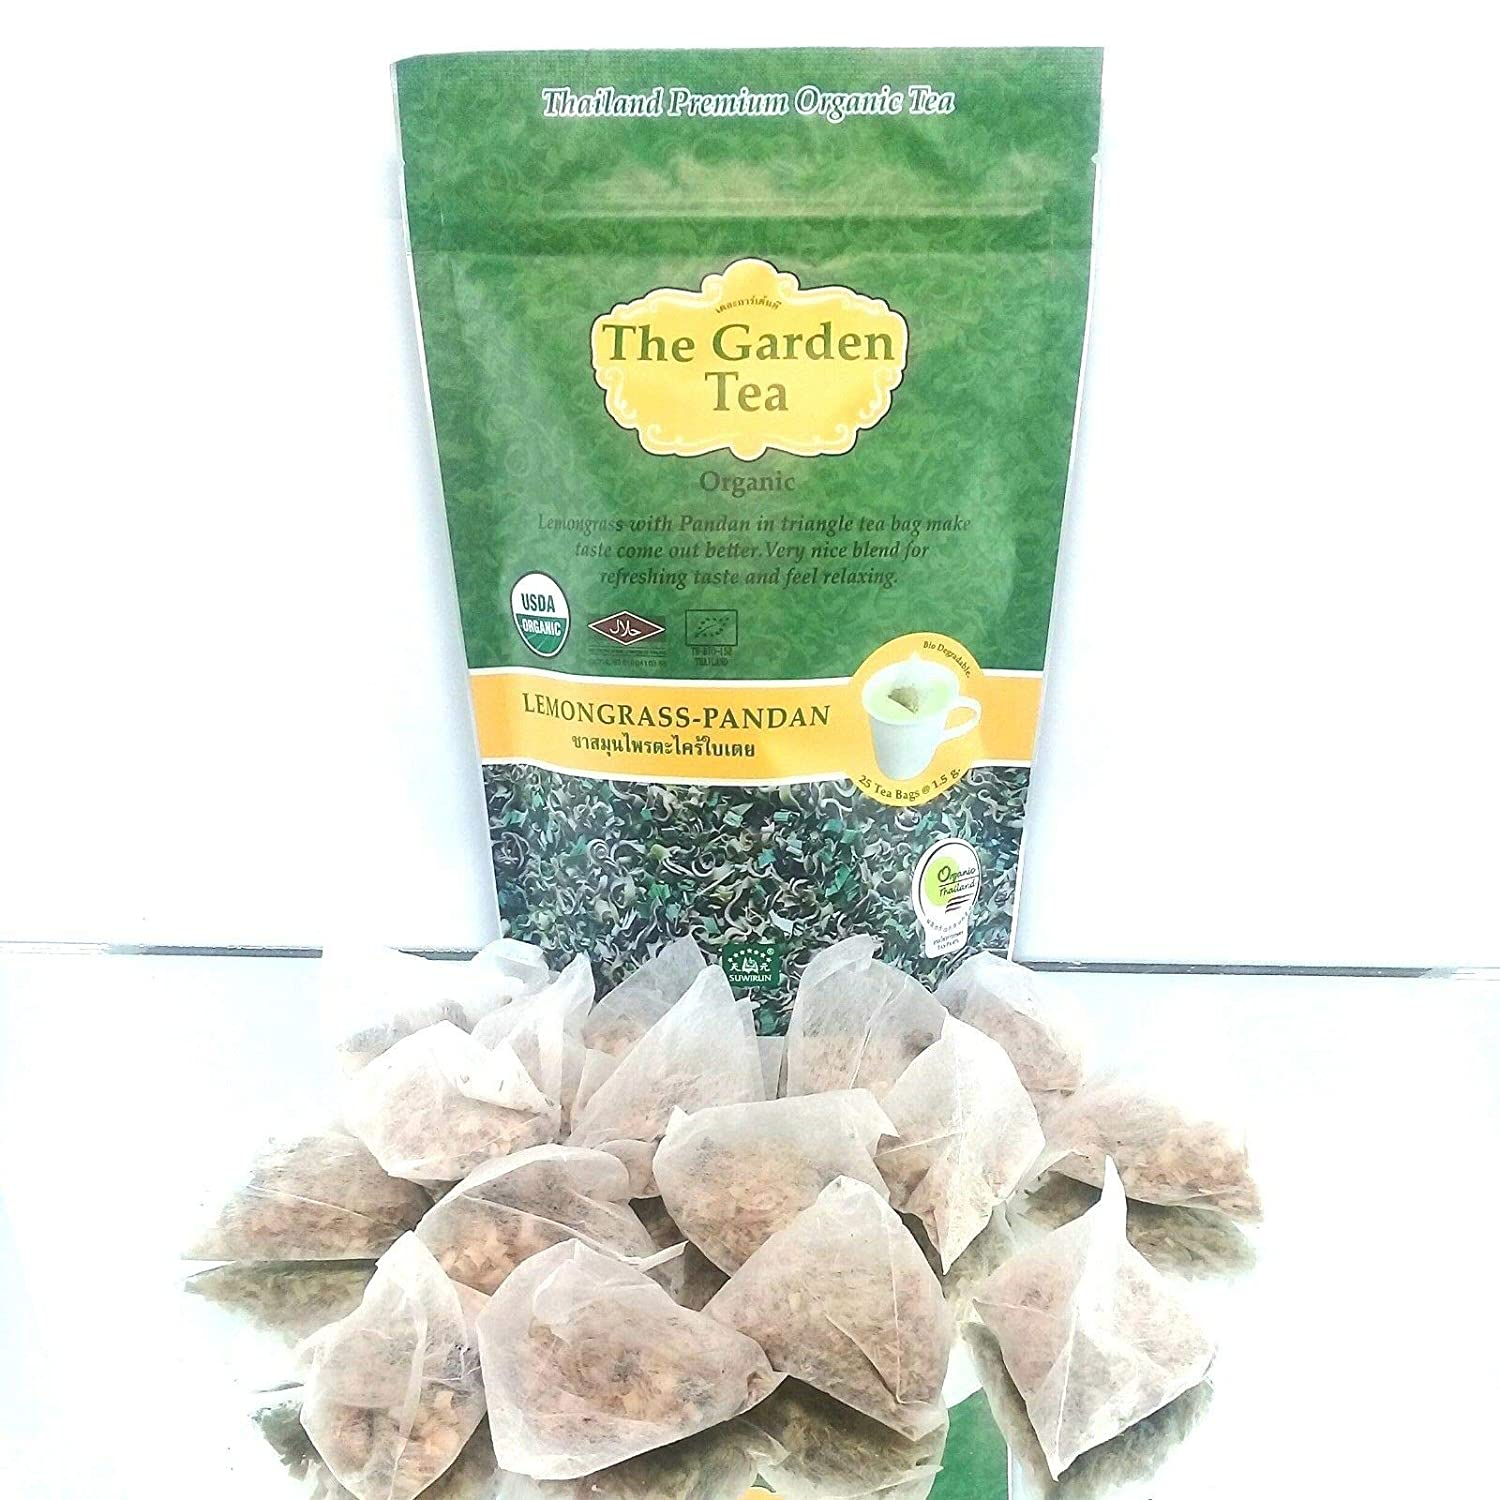 Lannasmile88 Thai Premium Certified USDA 100% Organic Pure Lemongrass Pandan Herbal Tea in Triangle Tea Bag